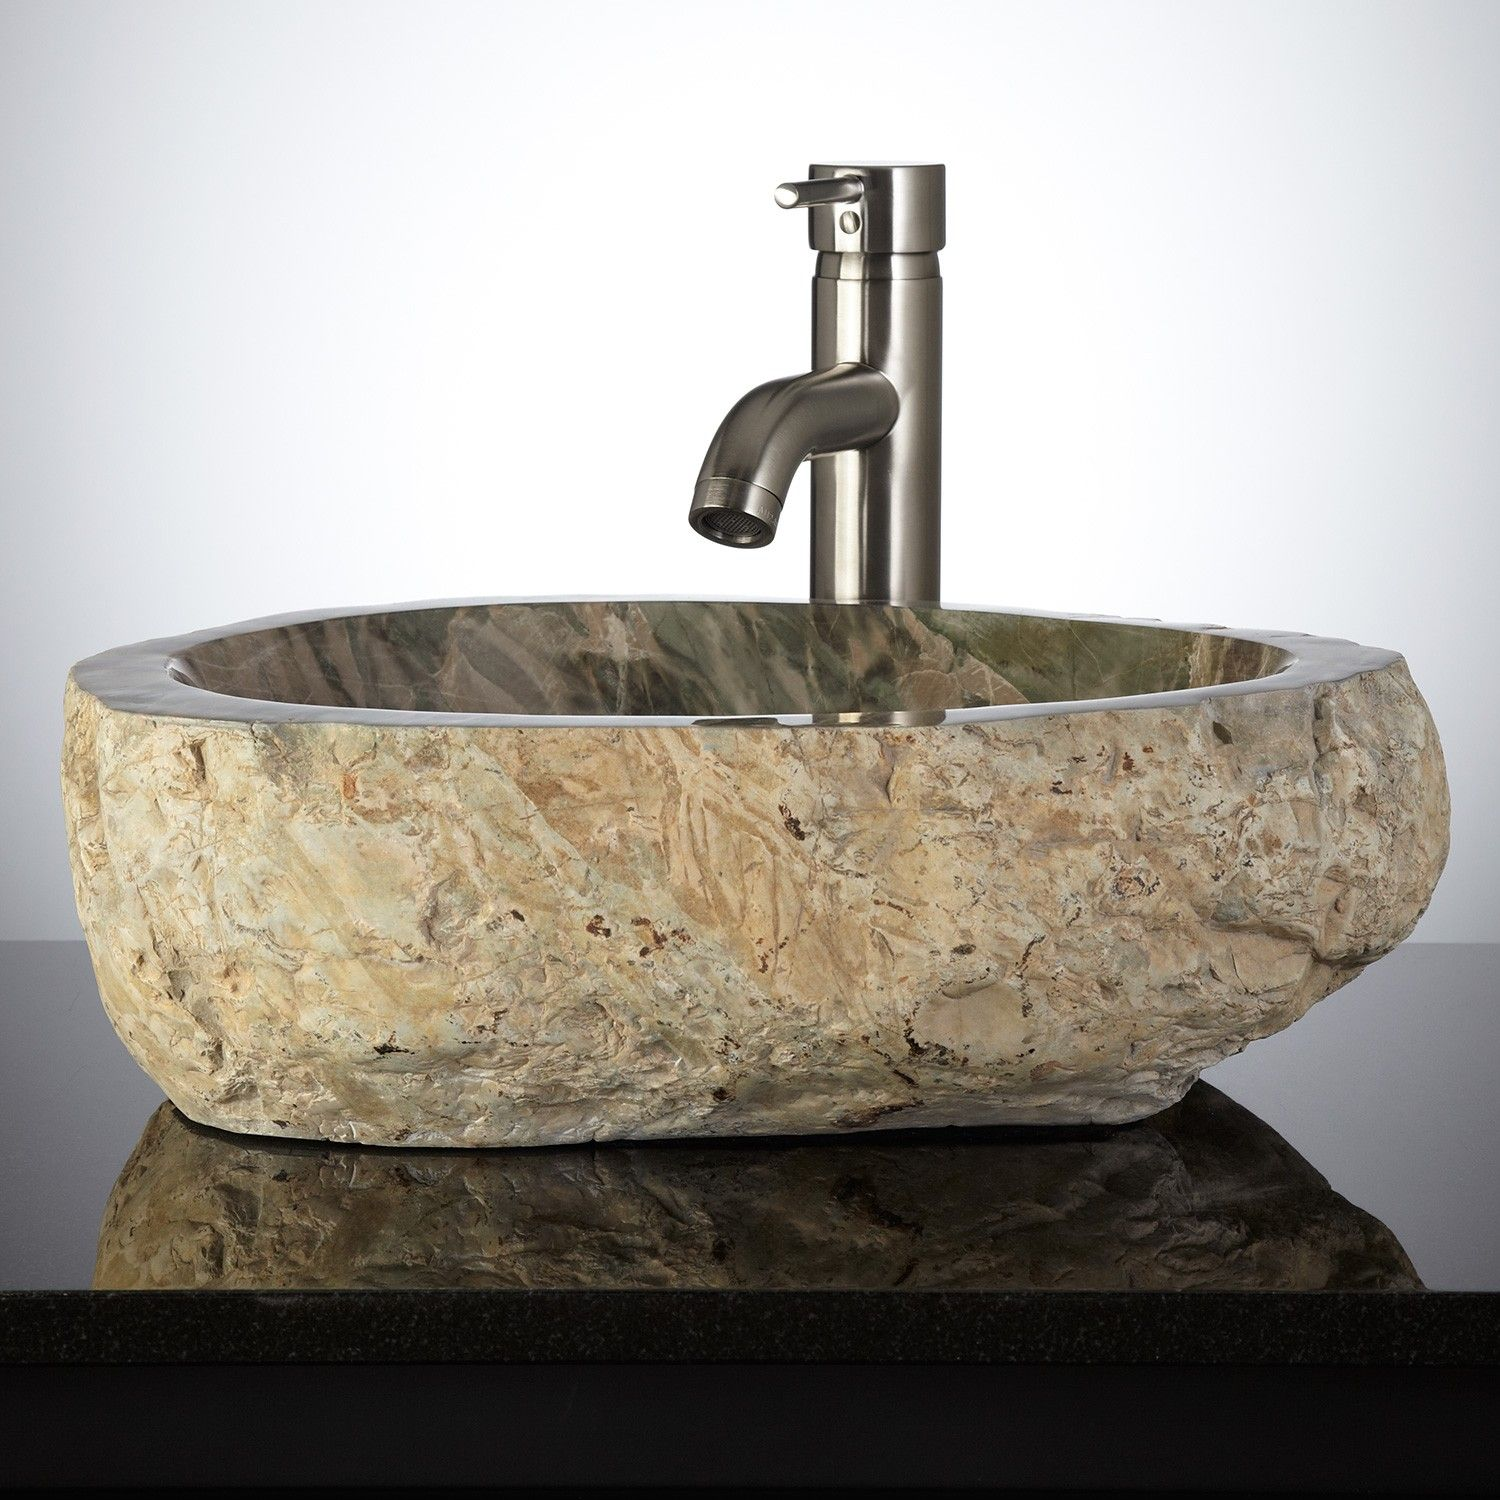 Liepa Natural Stone Vessel Sink Vessel Sinks Bathroom Sinks